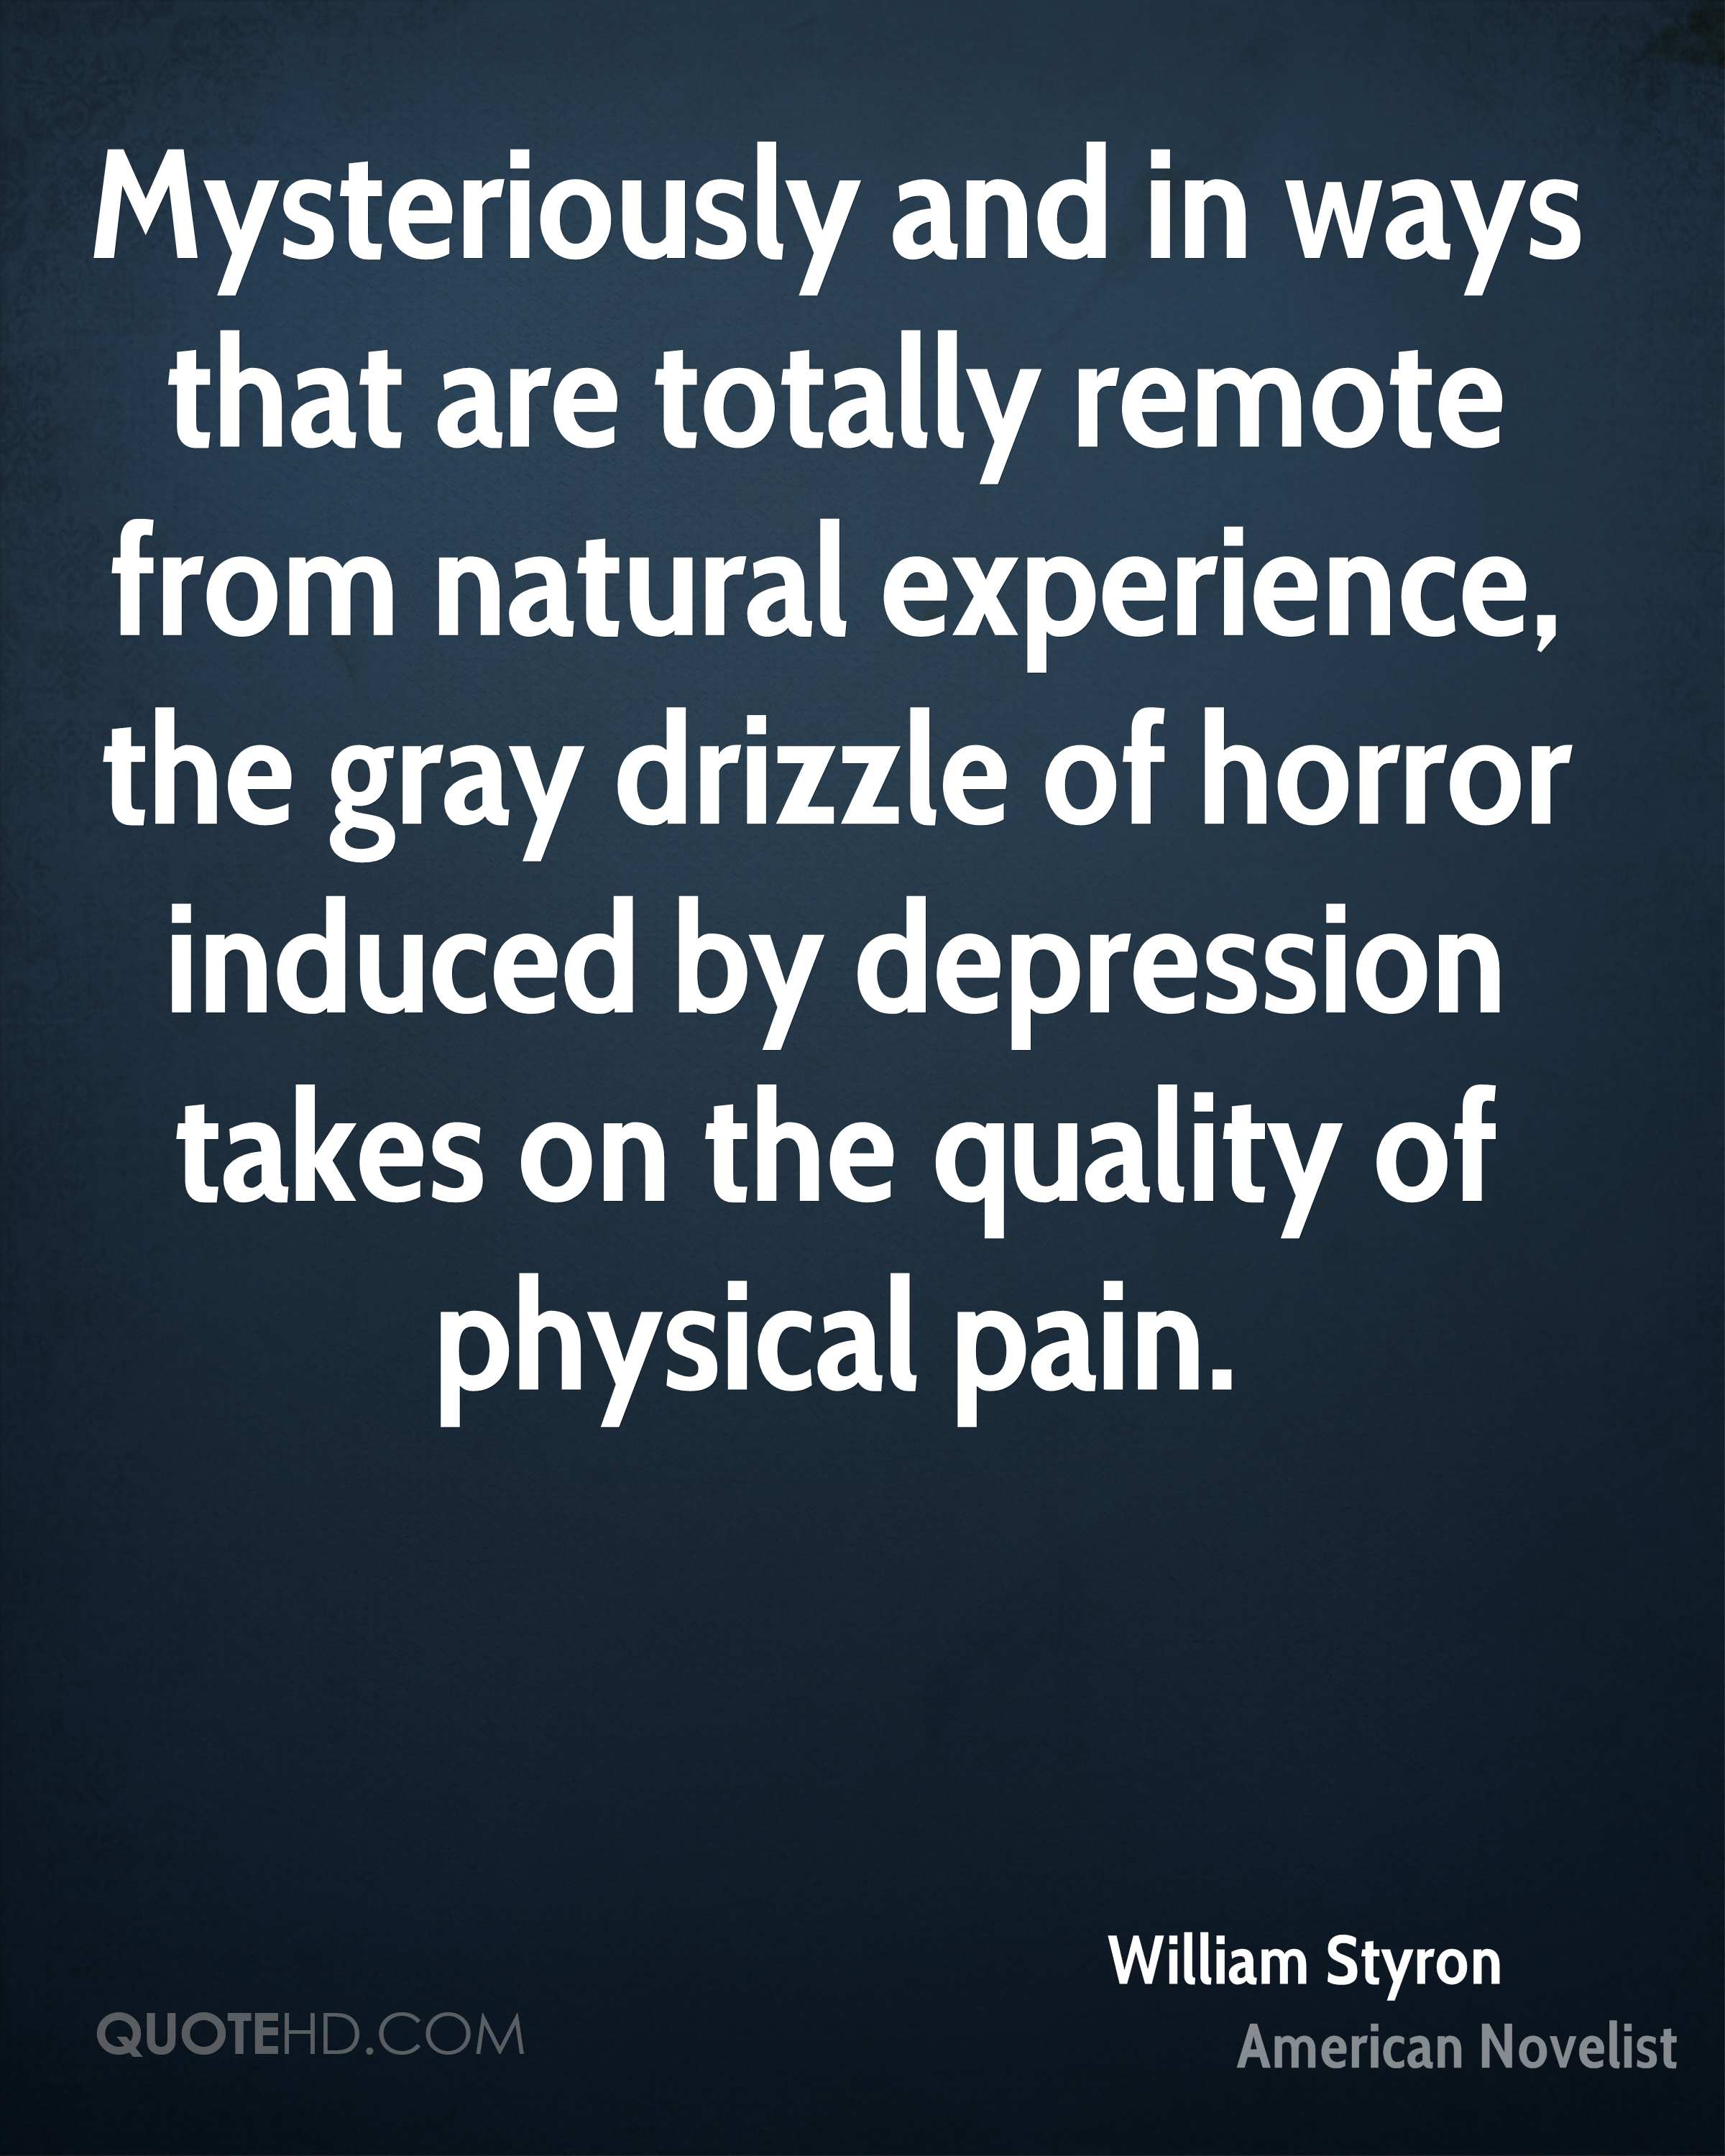 Mysteriously and in ways that are totally remote from natural experience, the gray drizzle of horror induced by depression takes on the quality of physical pain.